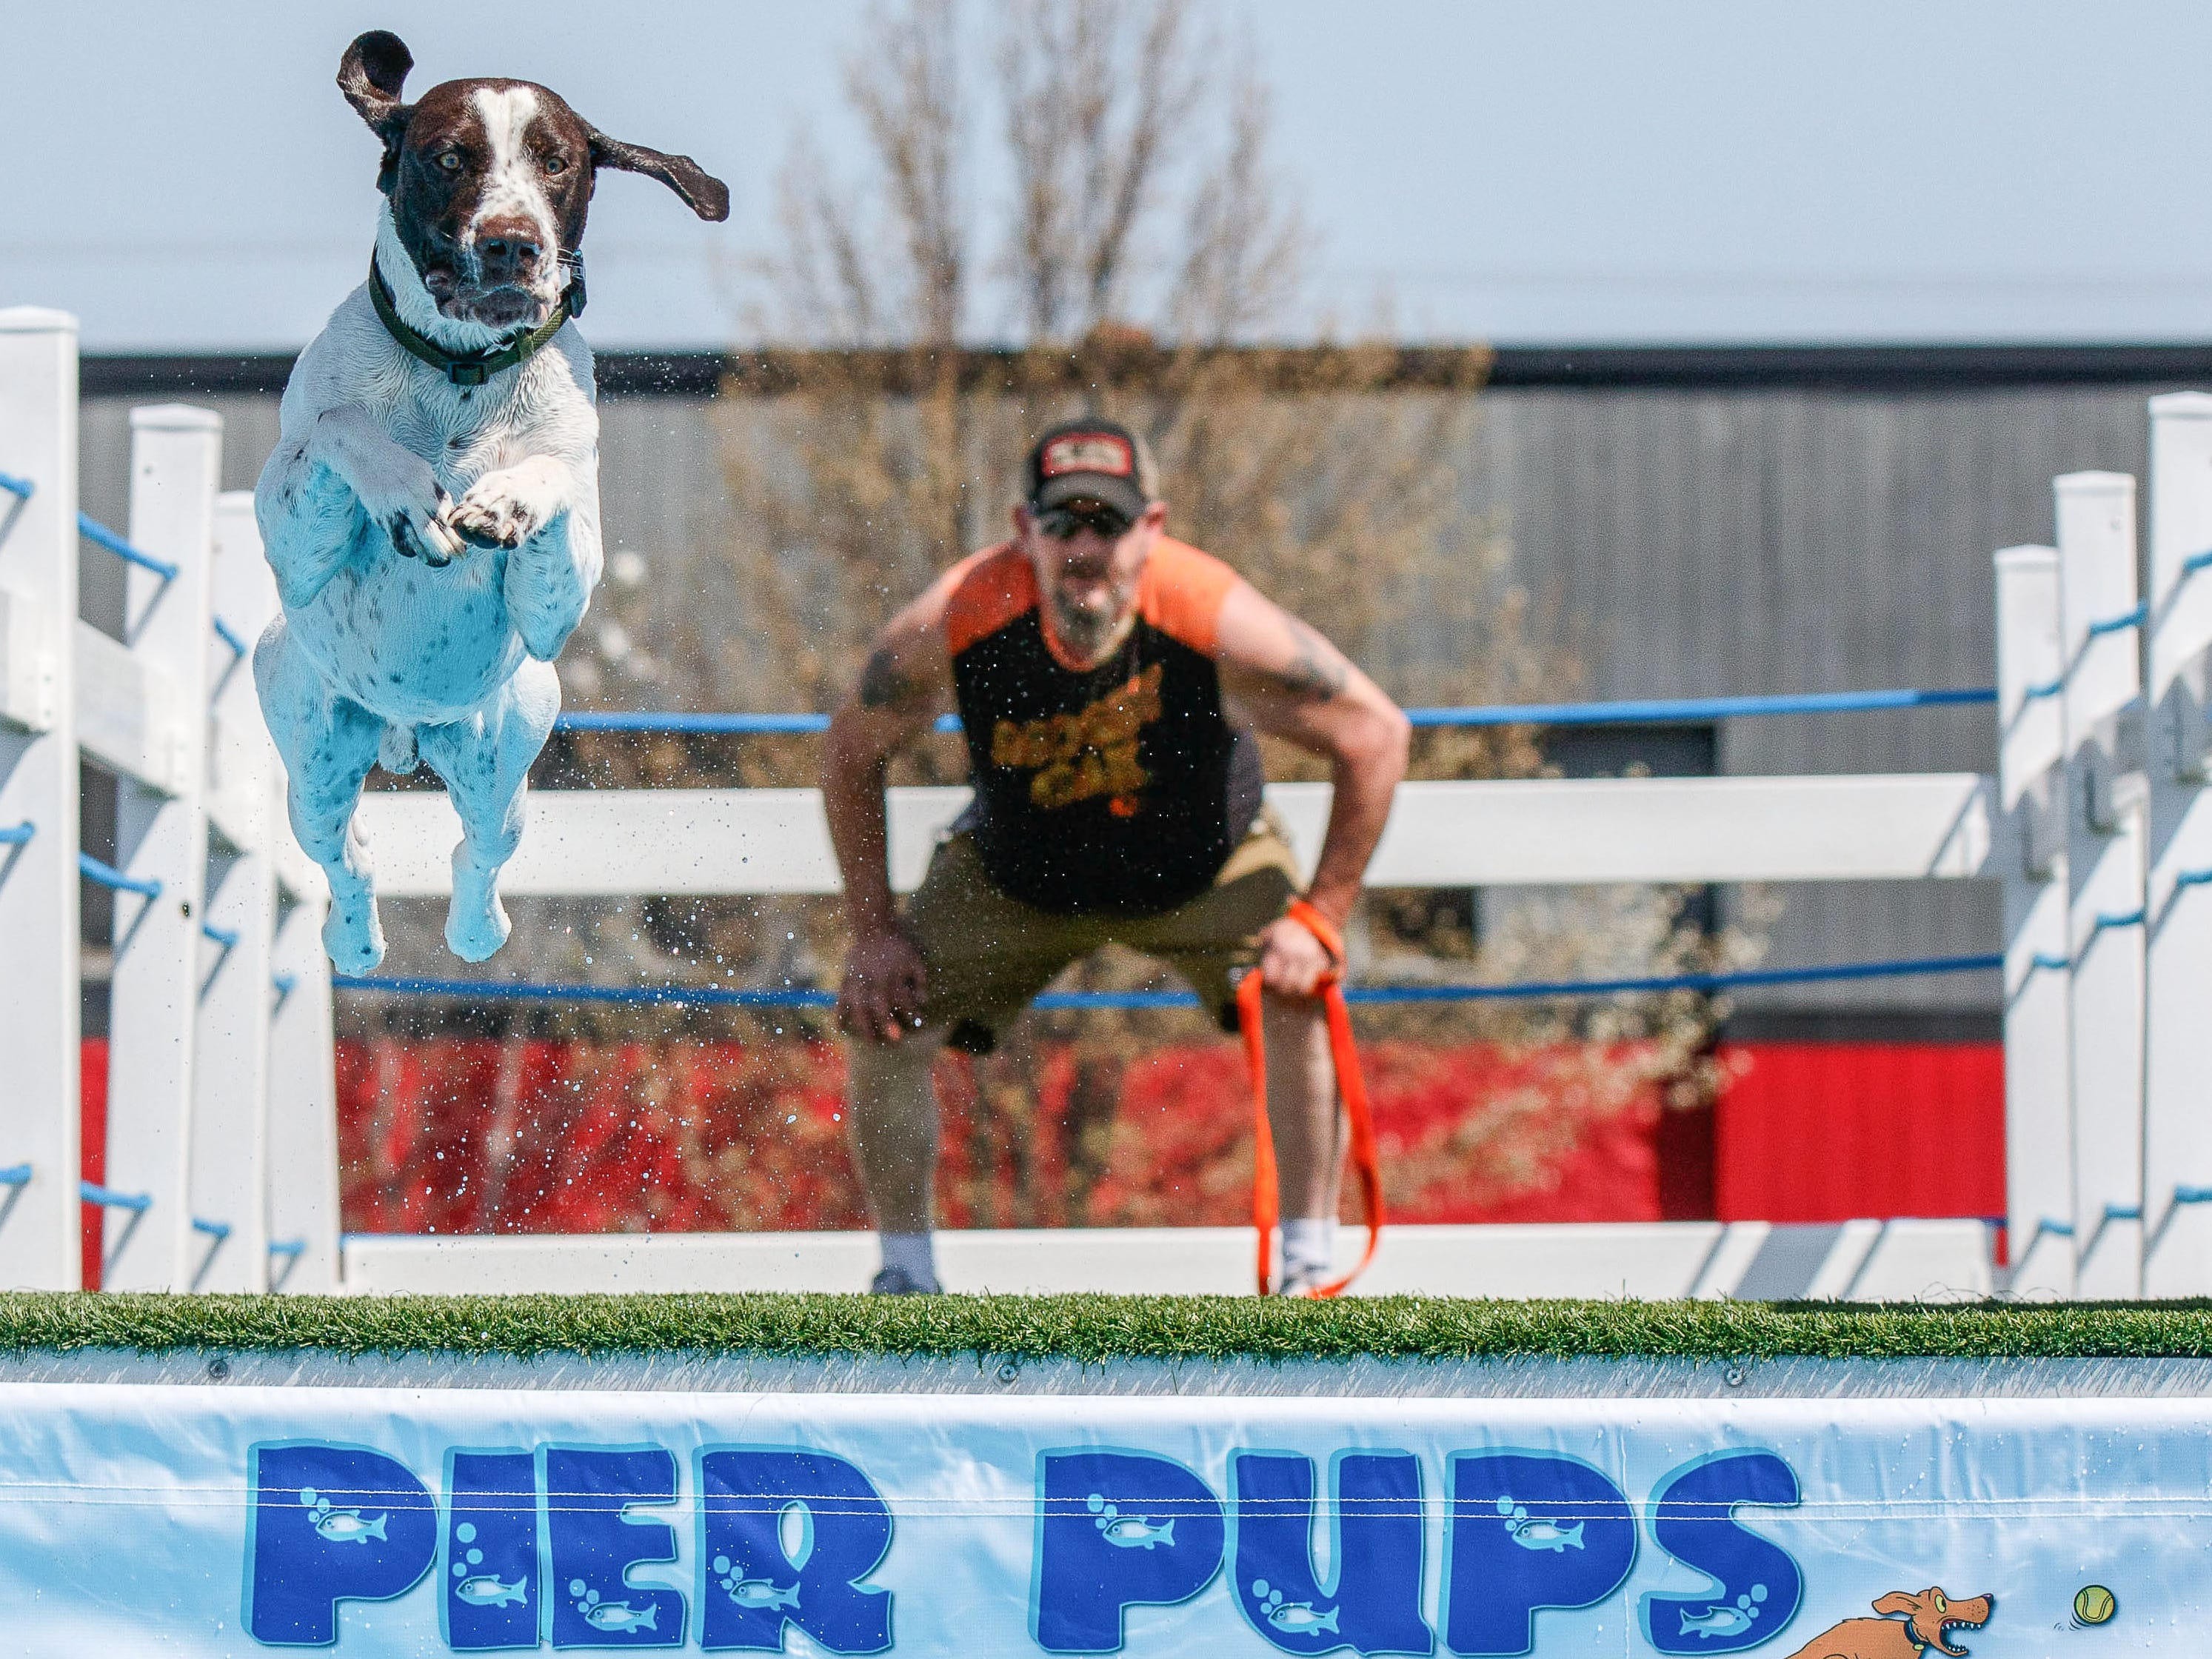 Paul Demler of Sheboygan Falls looks on as Gunner, his German shorthaired pointer, launches off the dock during the Pier Pups Canine Dock Jumping competition at the annual Wag, Woof & Walk event in Cedarburg.